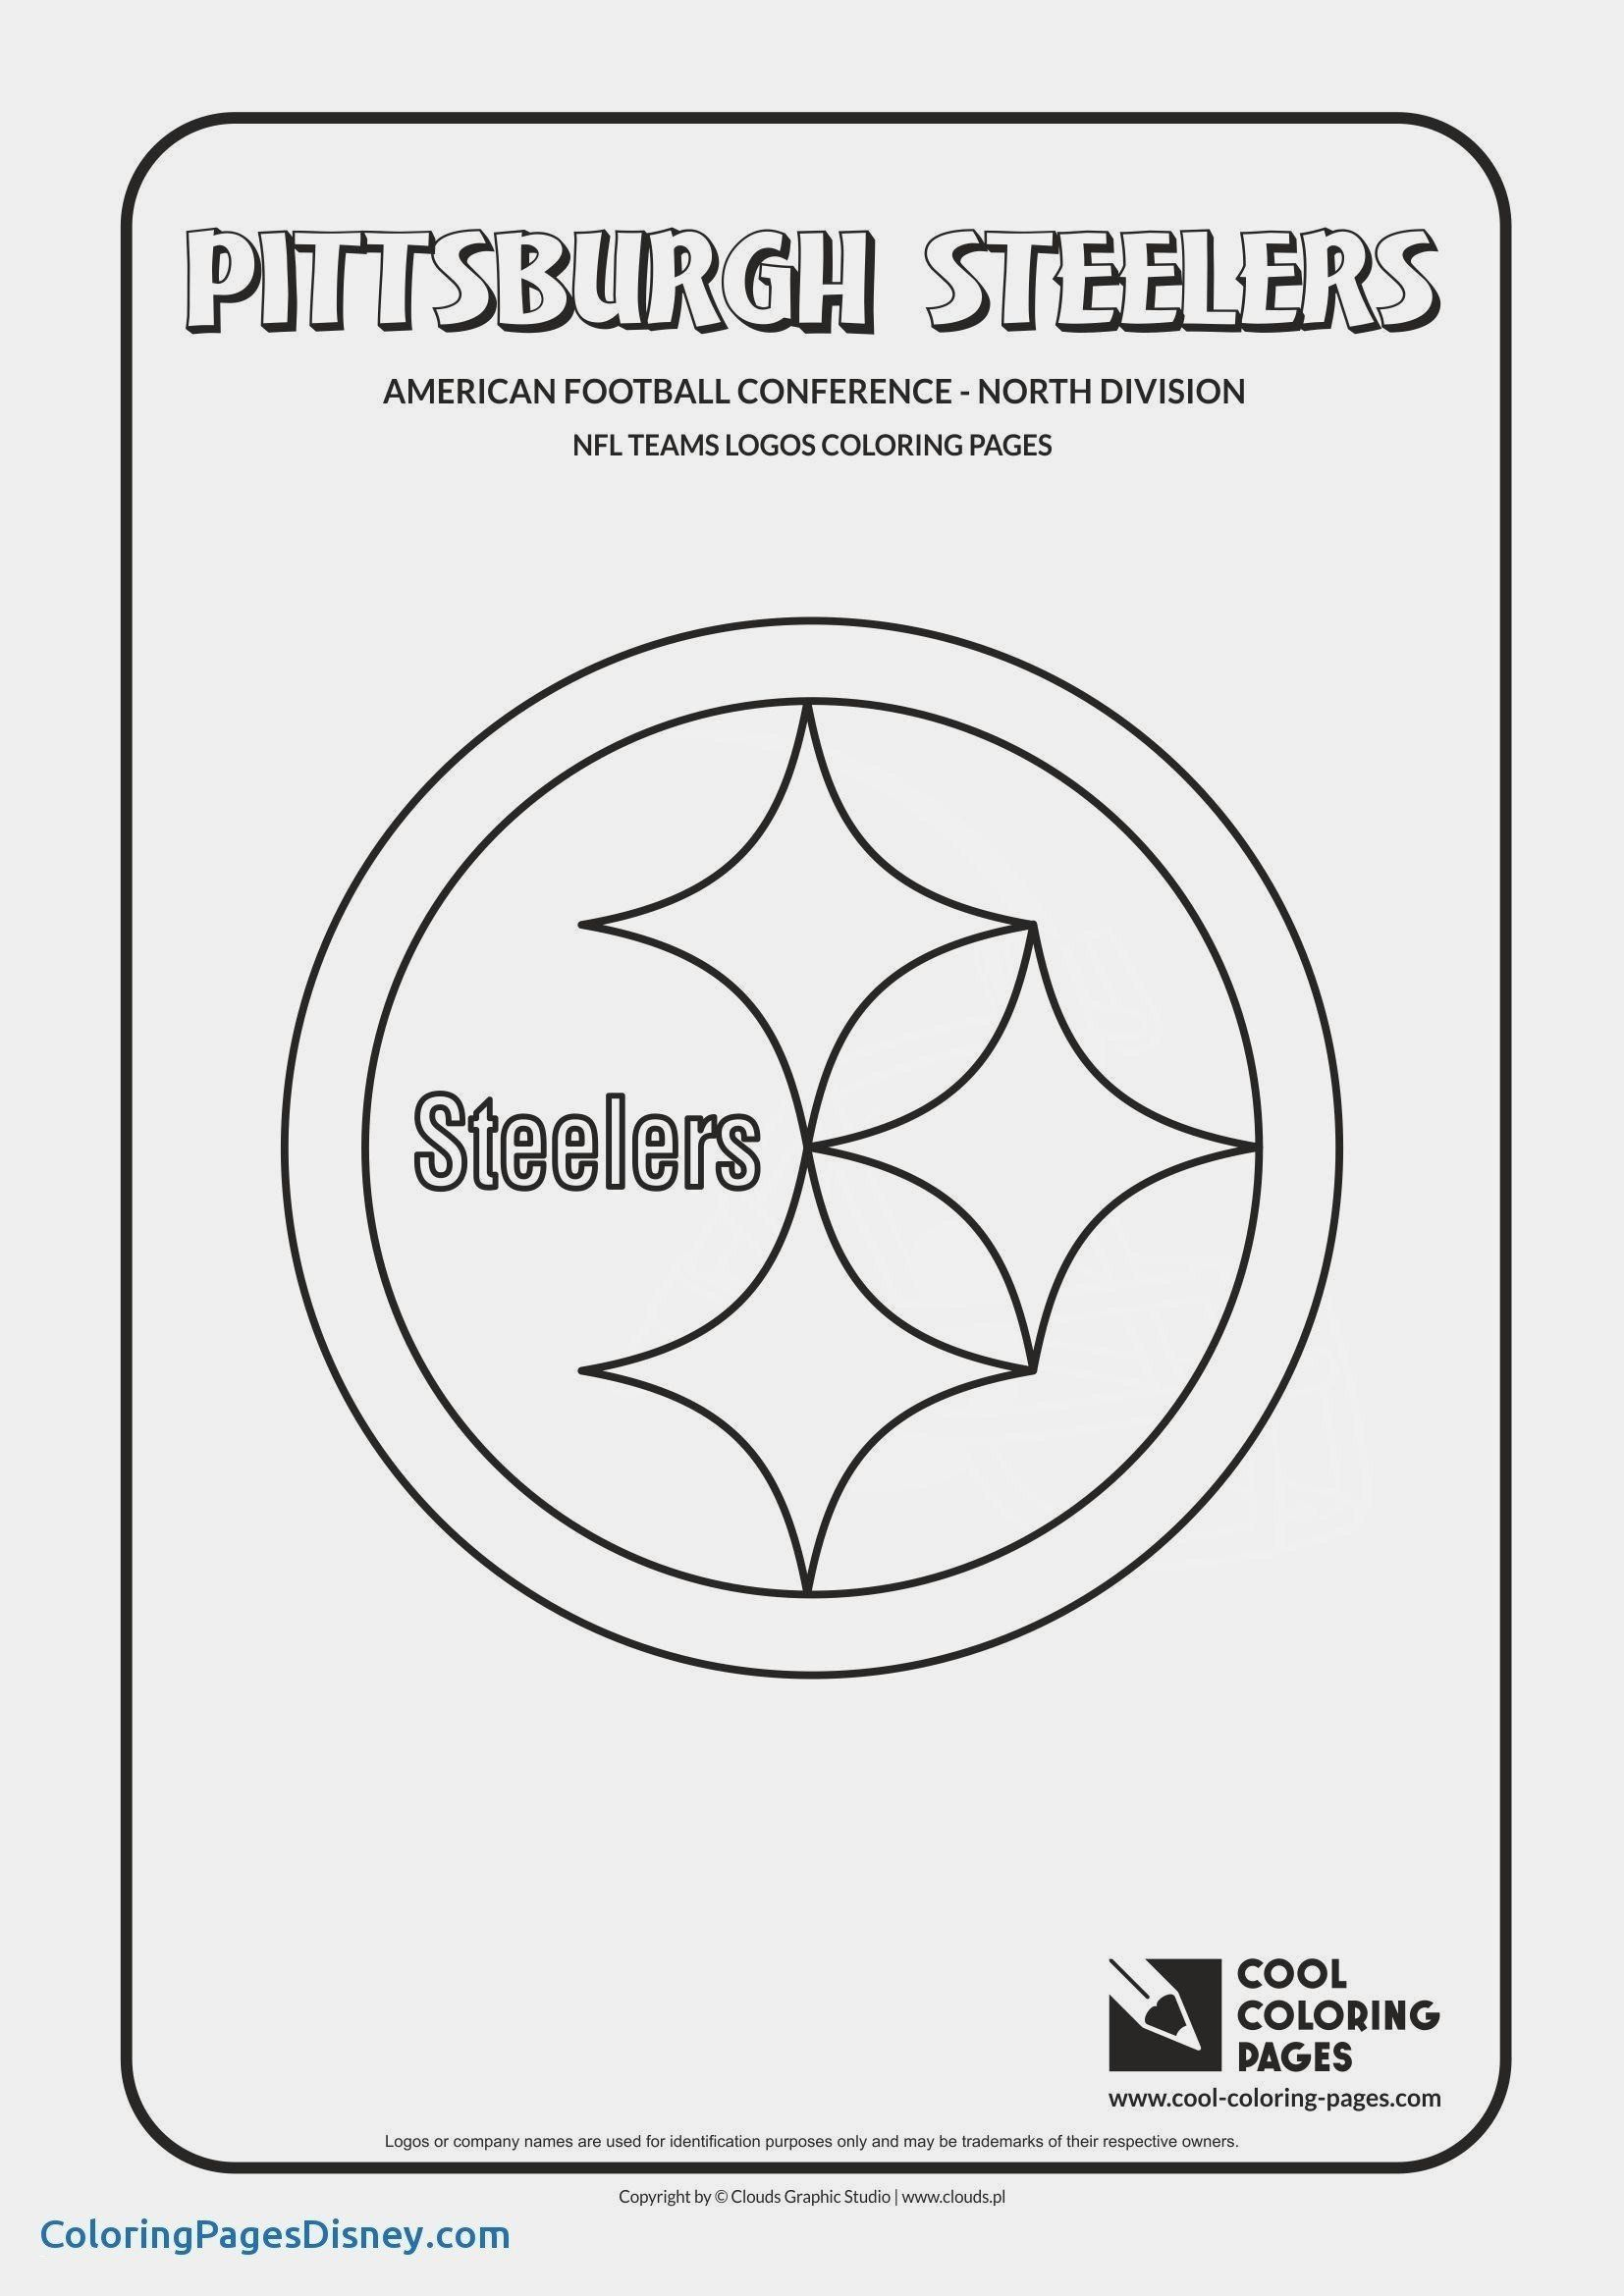 Football Player Coloring Pages Best Of New Nfl Logo Coloring Sheets Sirclaymelon In 2020 Nfl Teams Logos Football Coloring Pages Nfl Logo